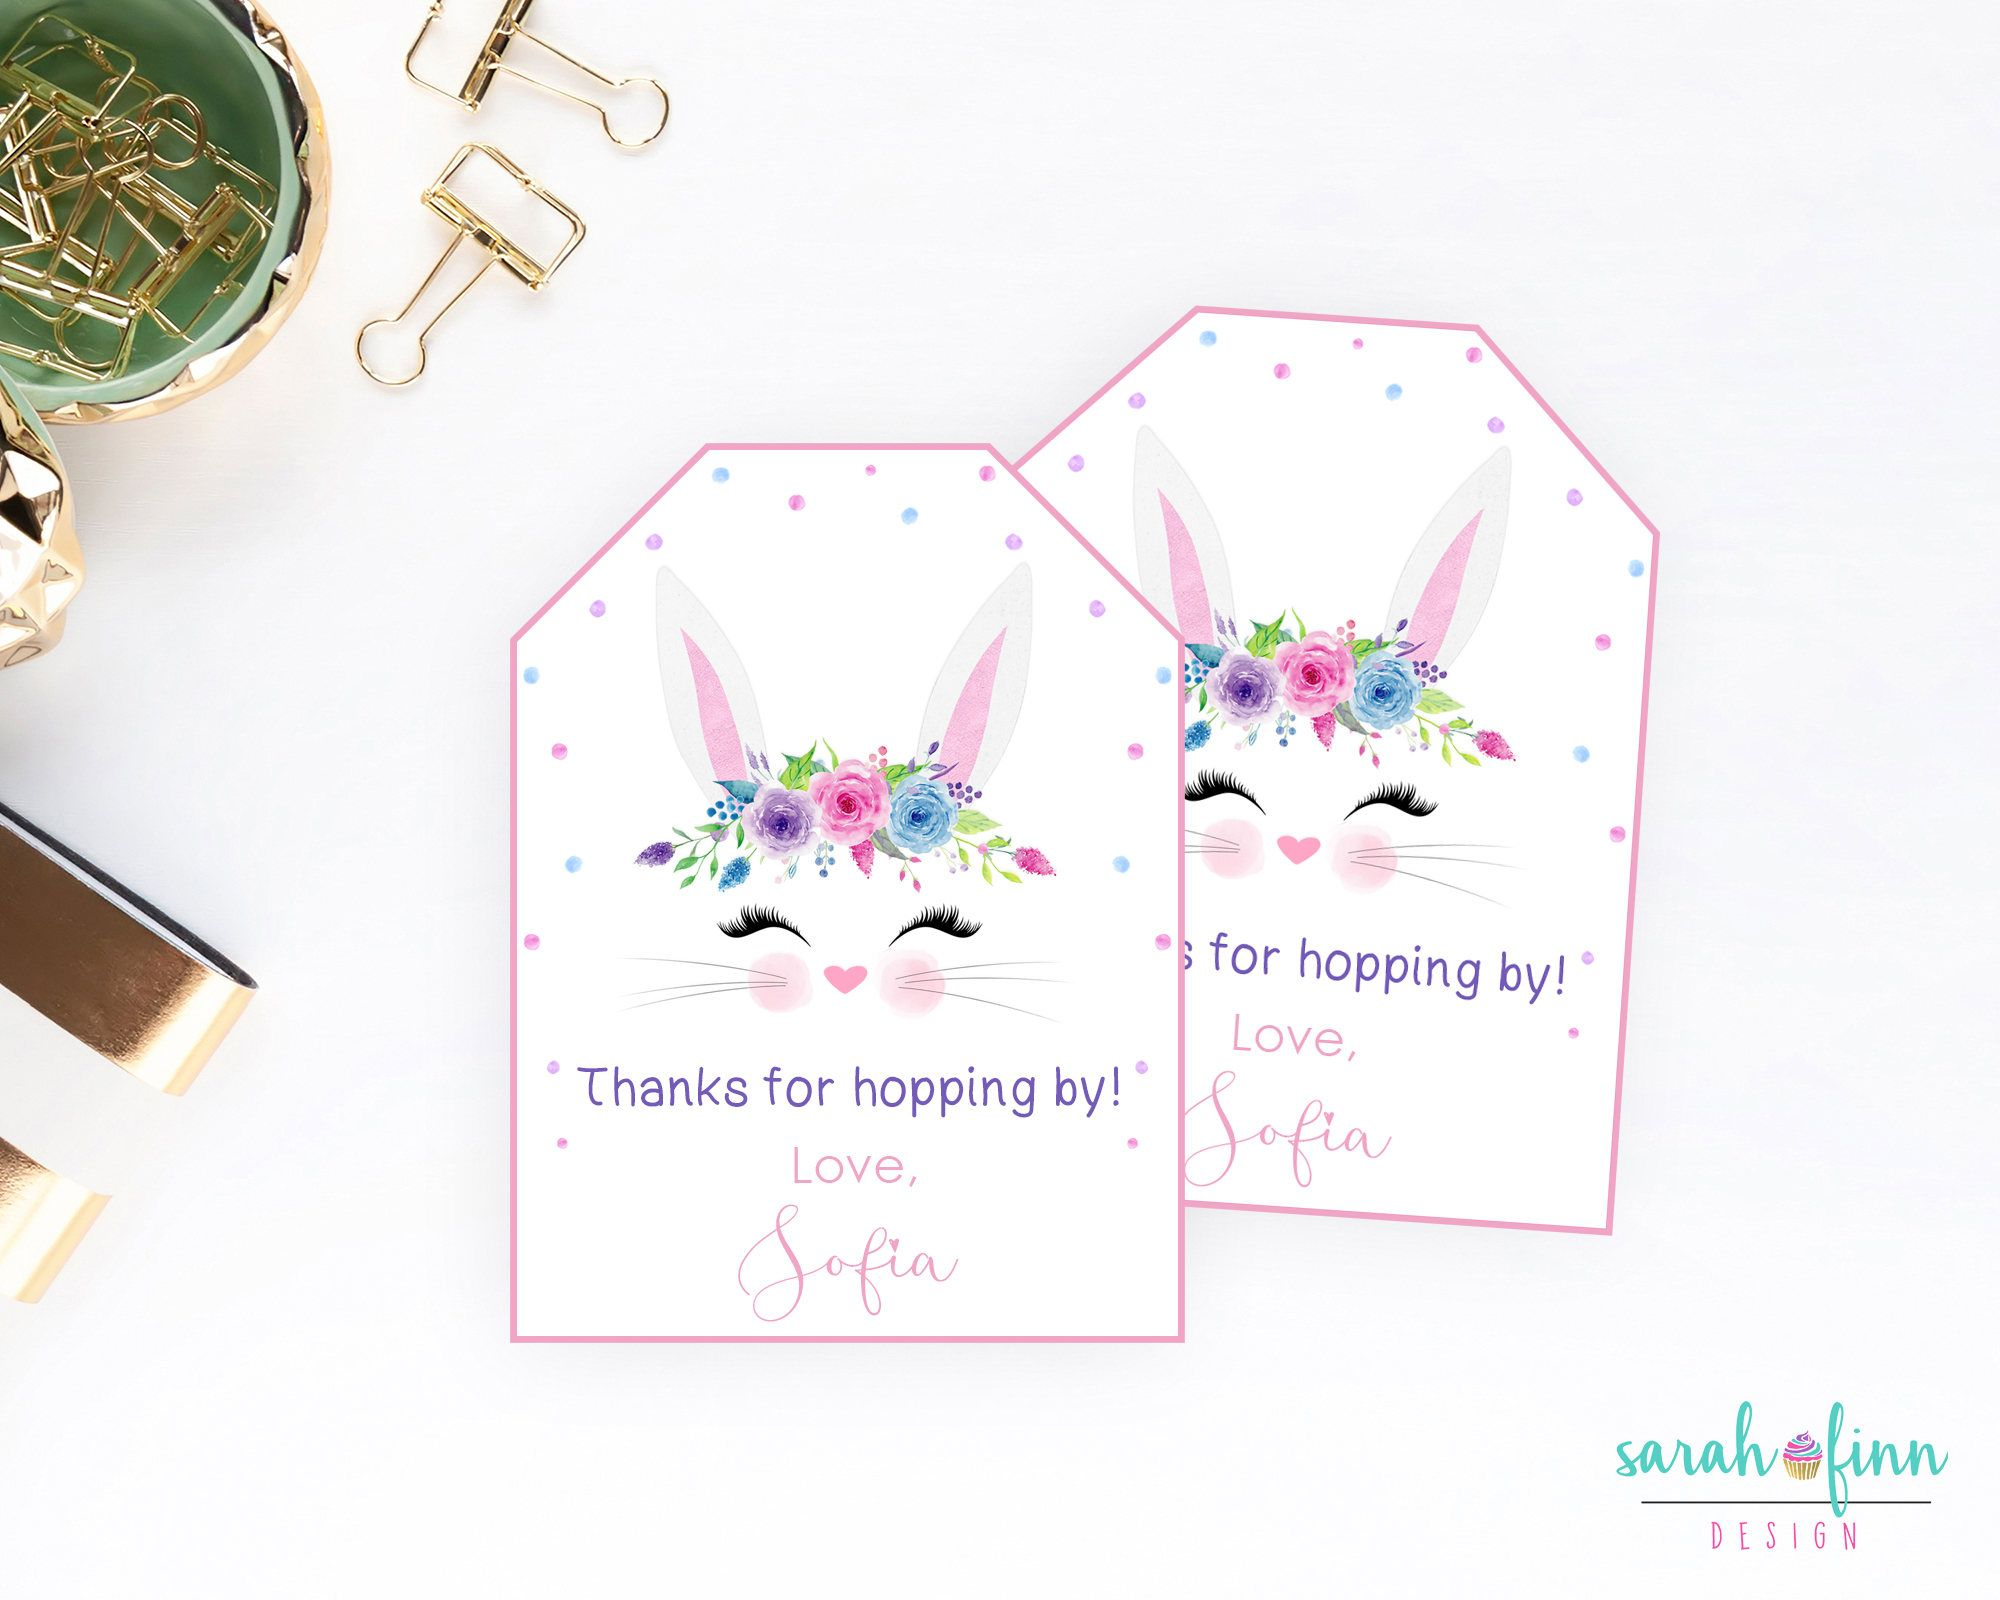 Bunny birthday party favor tags printable thank you tags hopping by bunny birthday party favor tags printable thank you tags hopping by first birthday easter gift tags negle Images